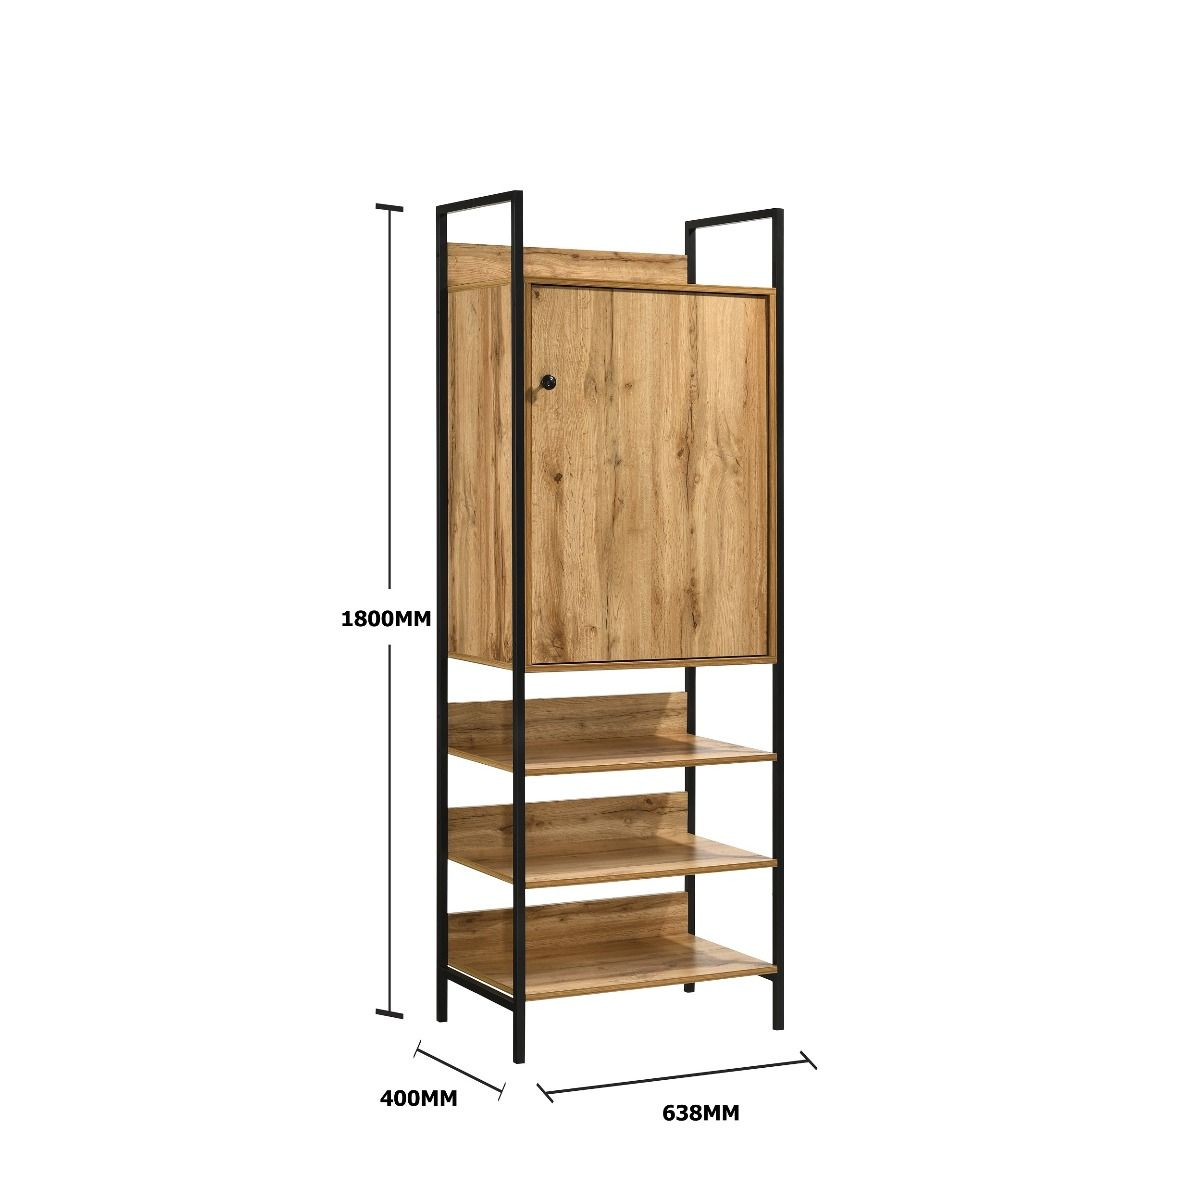 Storage Cabinet with 1 Door & 3 Shelves